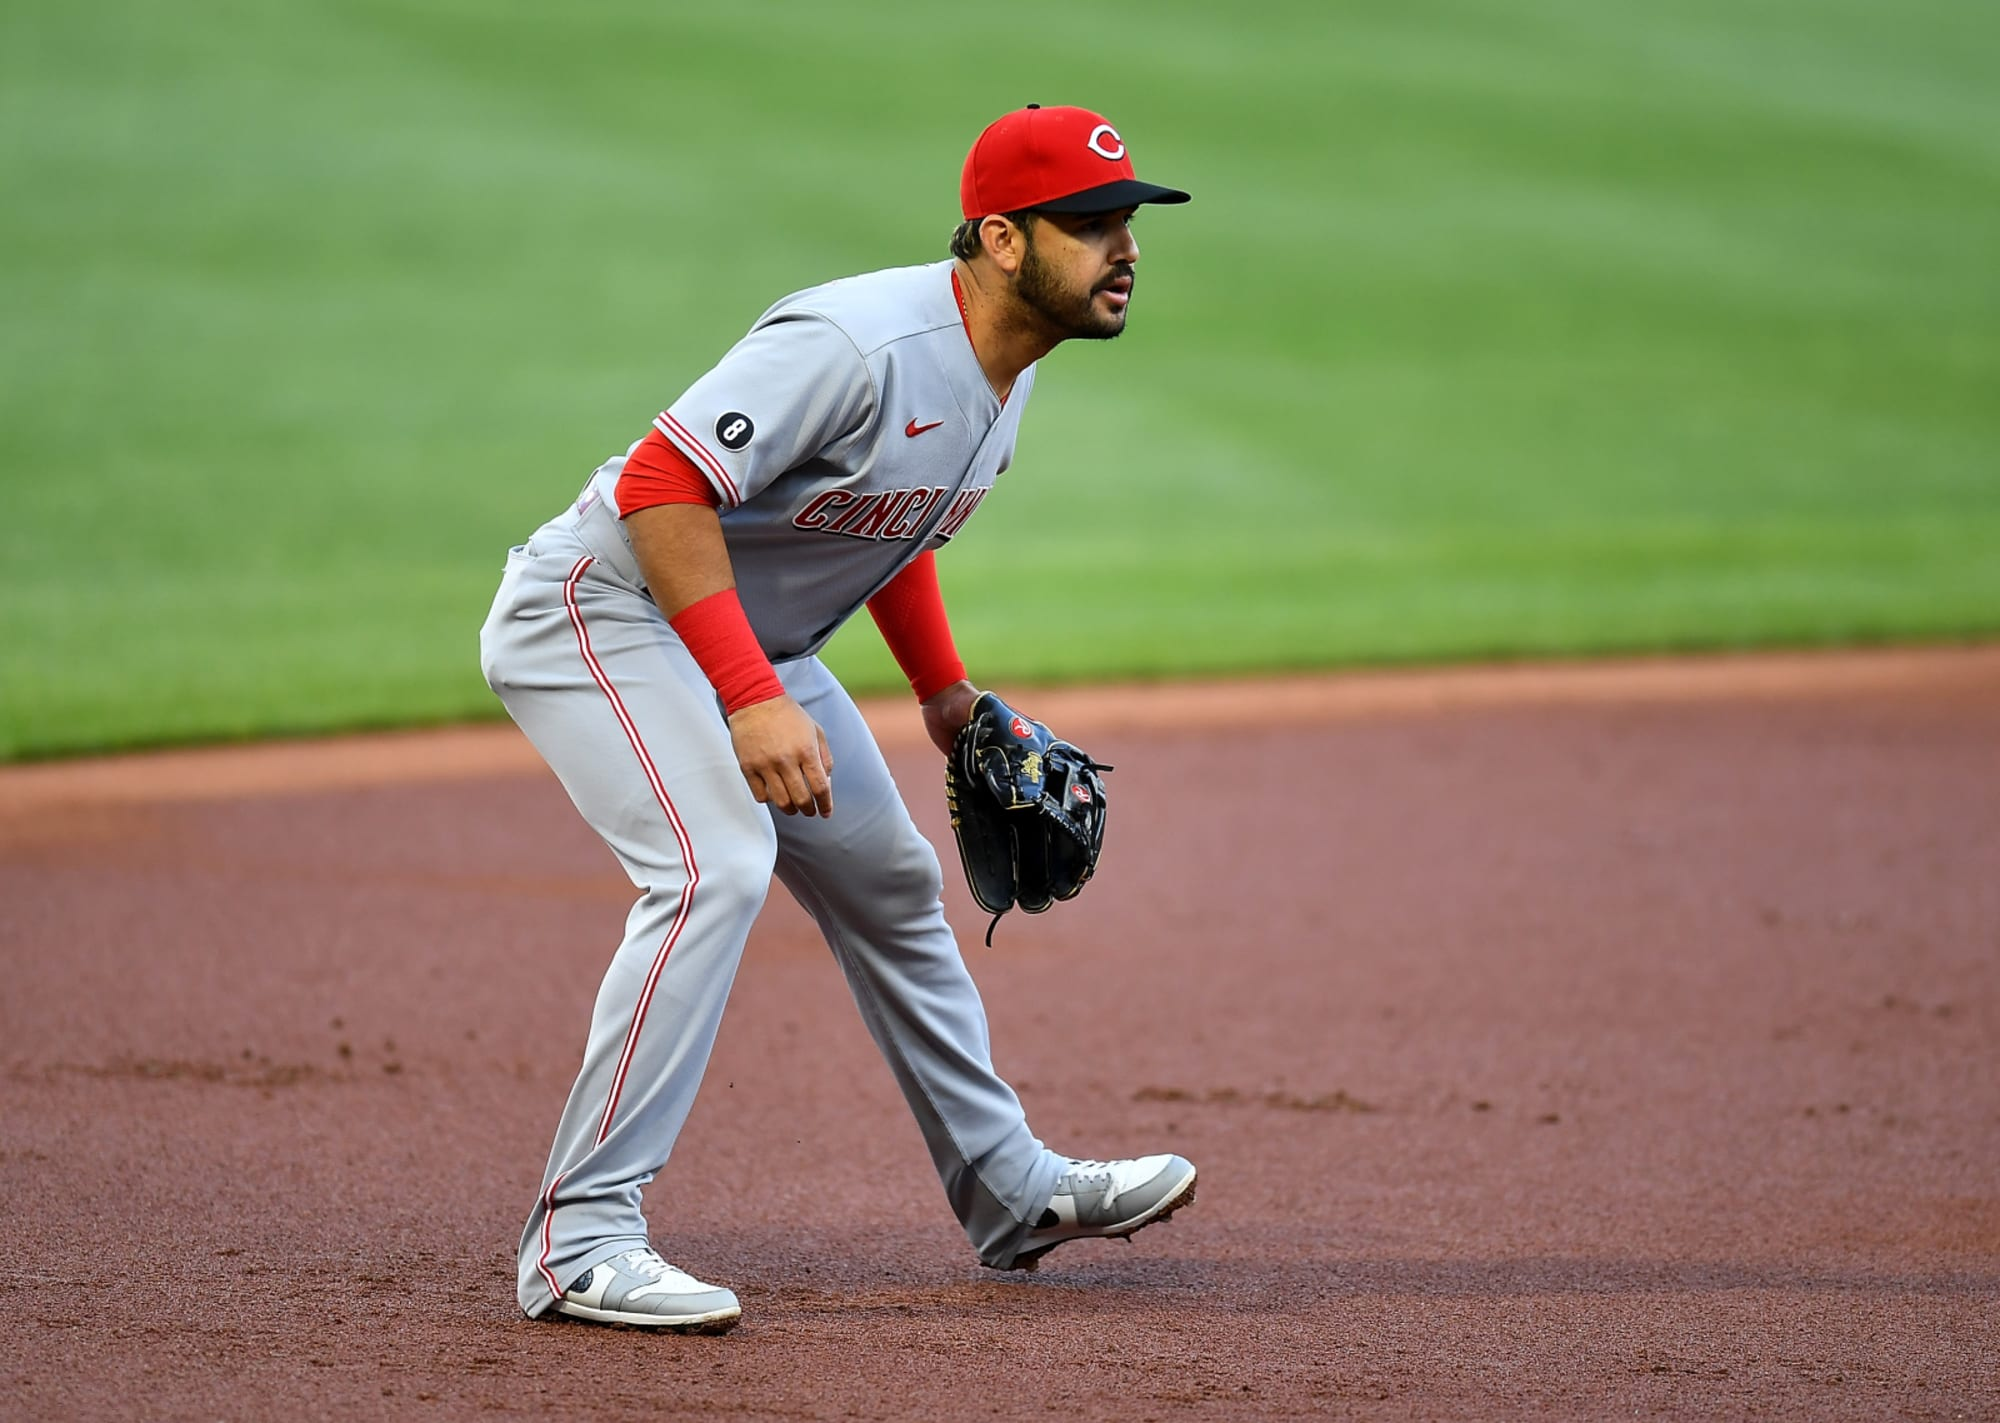 Reds: Why the sudden abandonment of Eugenio Suarez at shortstop?